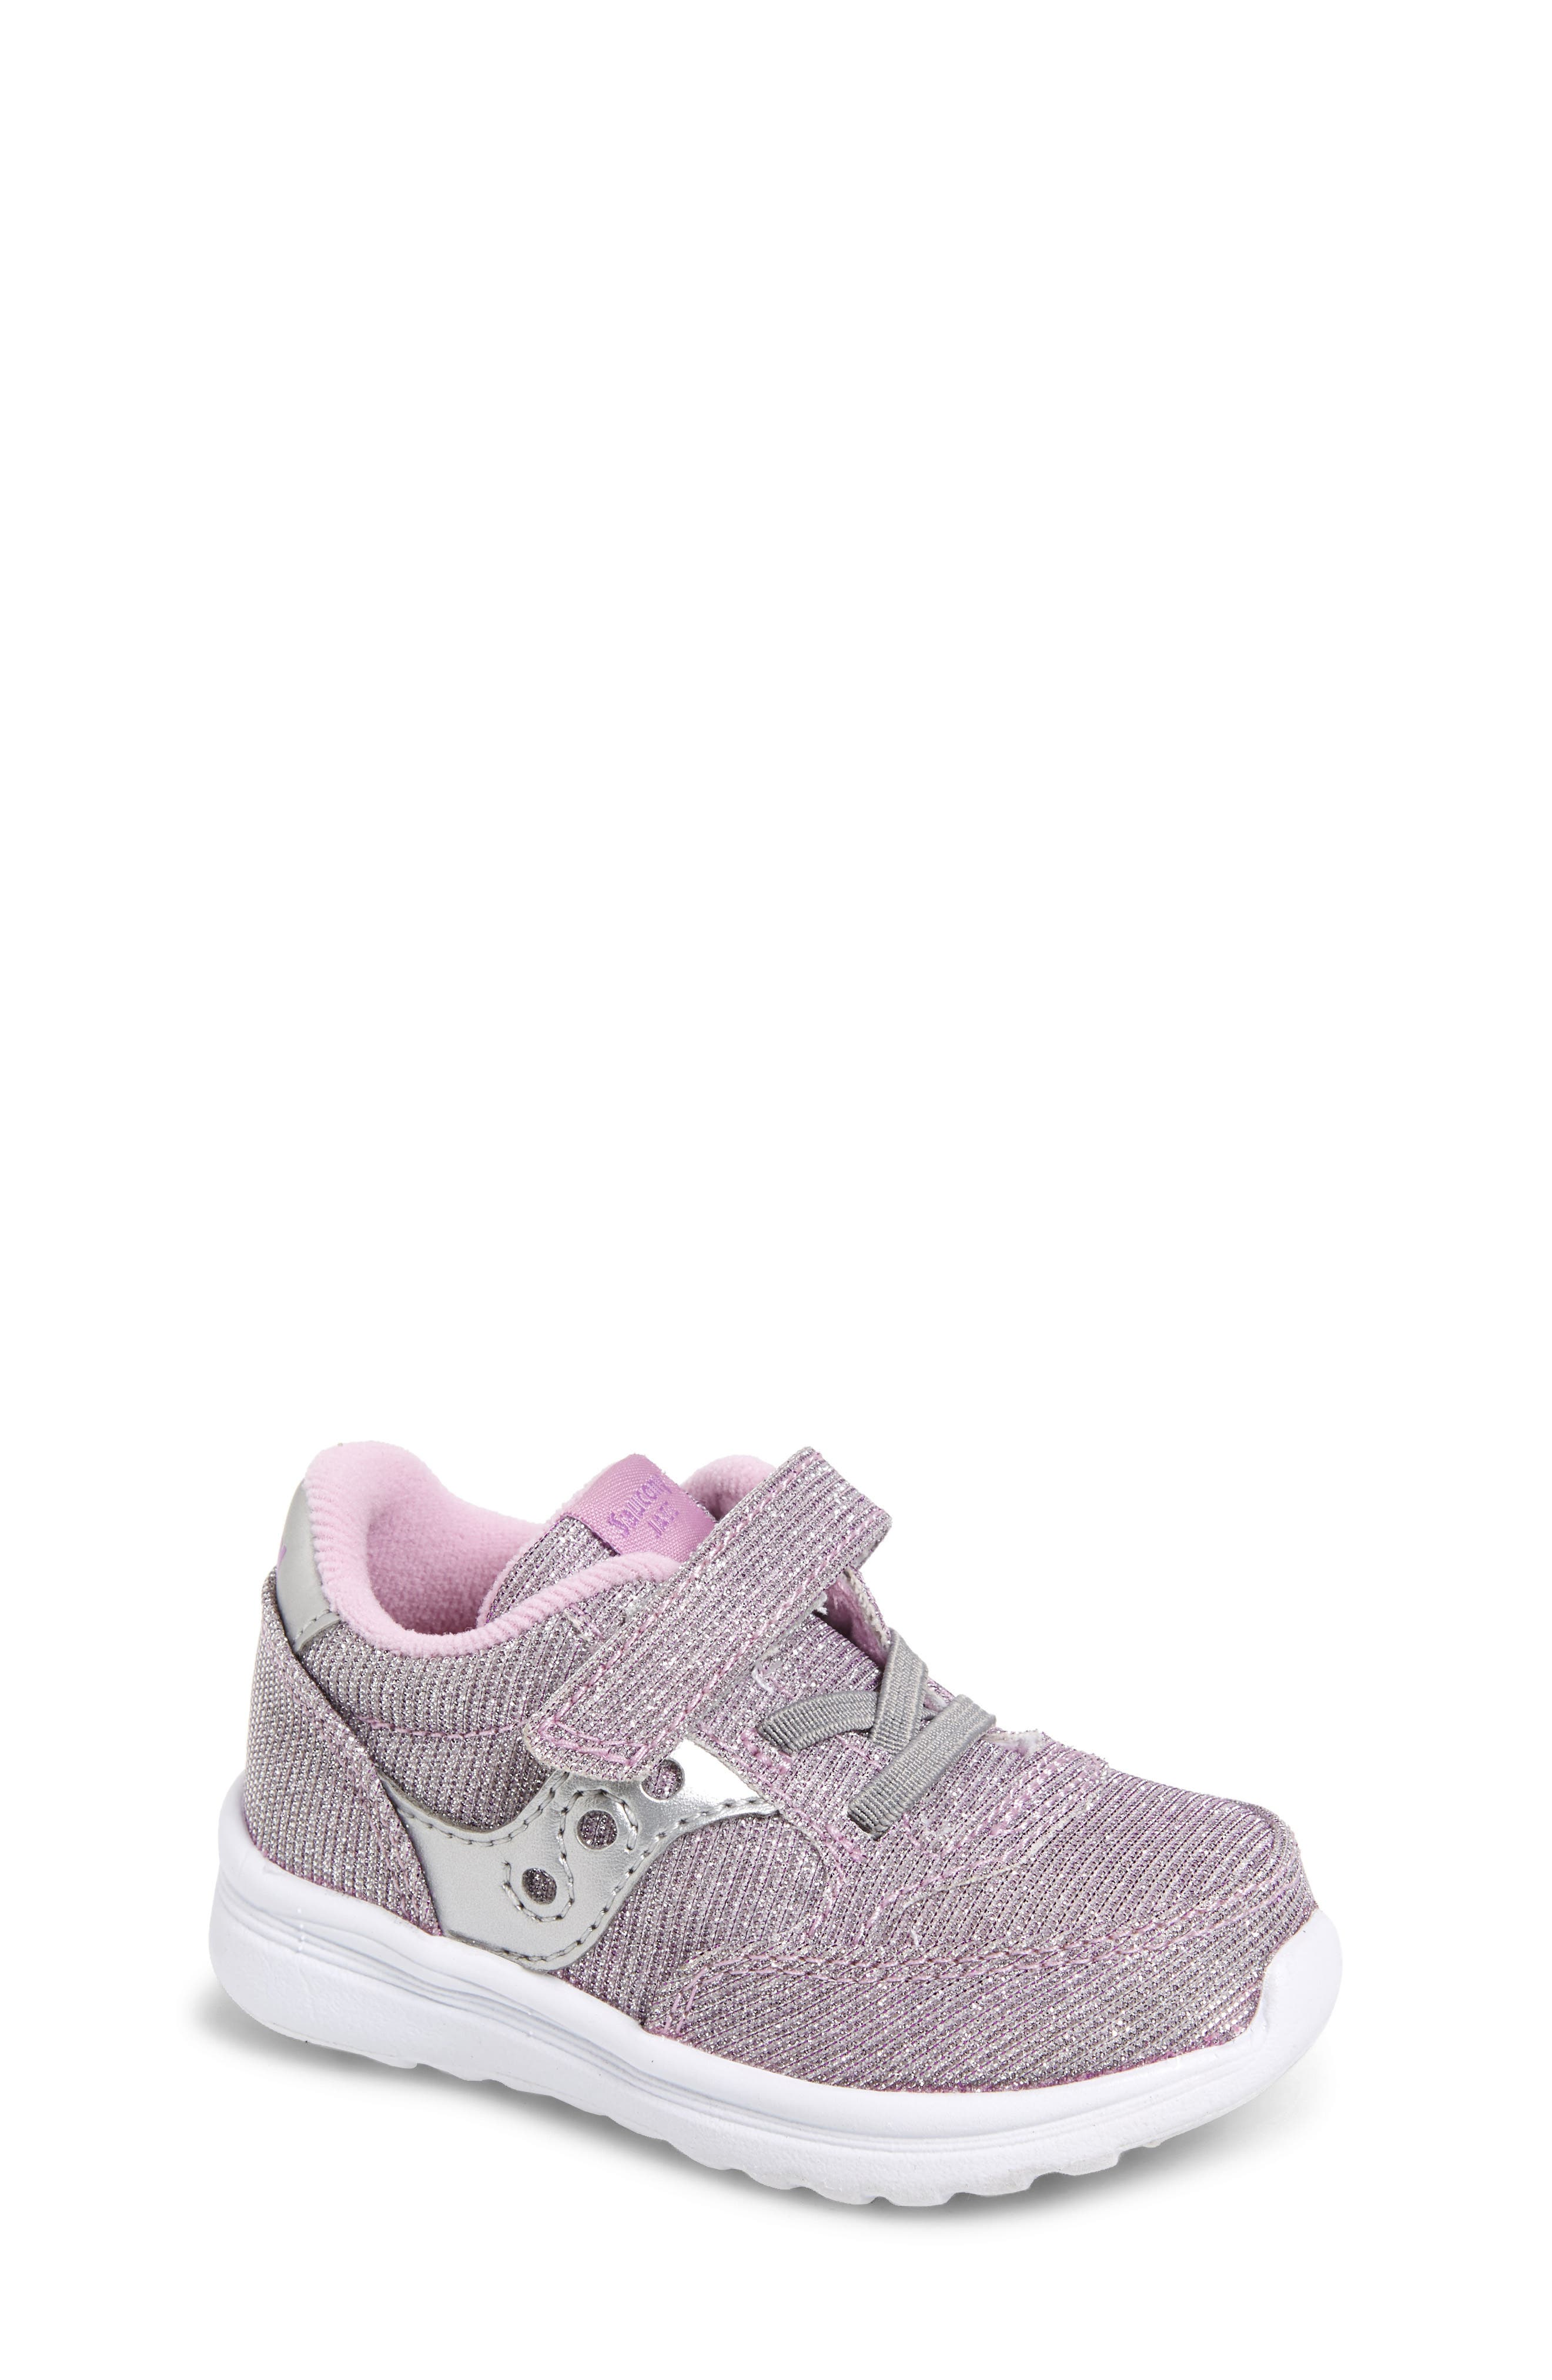 Kids' Saucony Shoes | Nordstrom